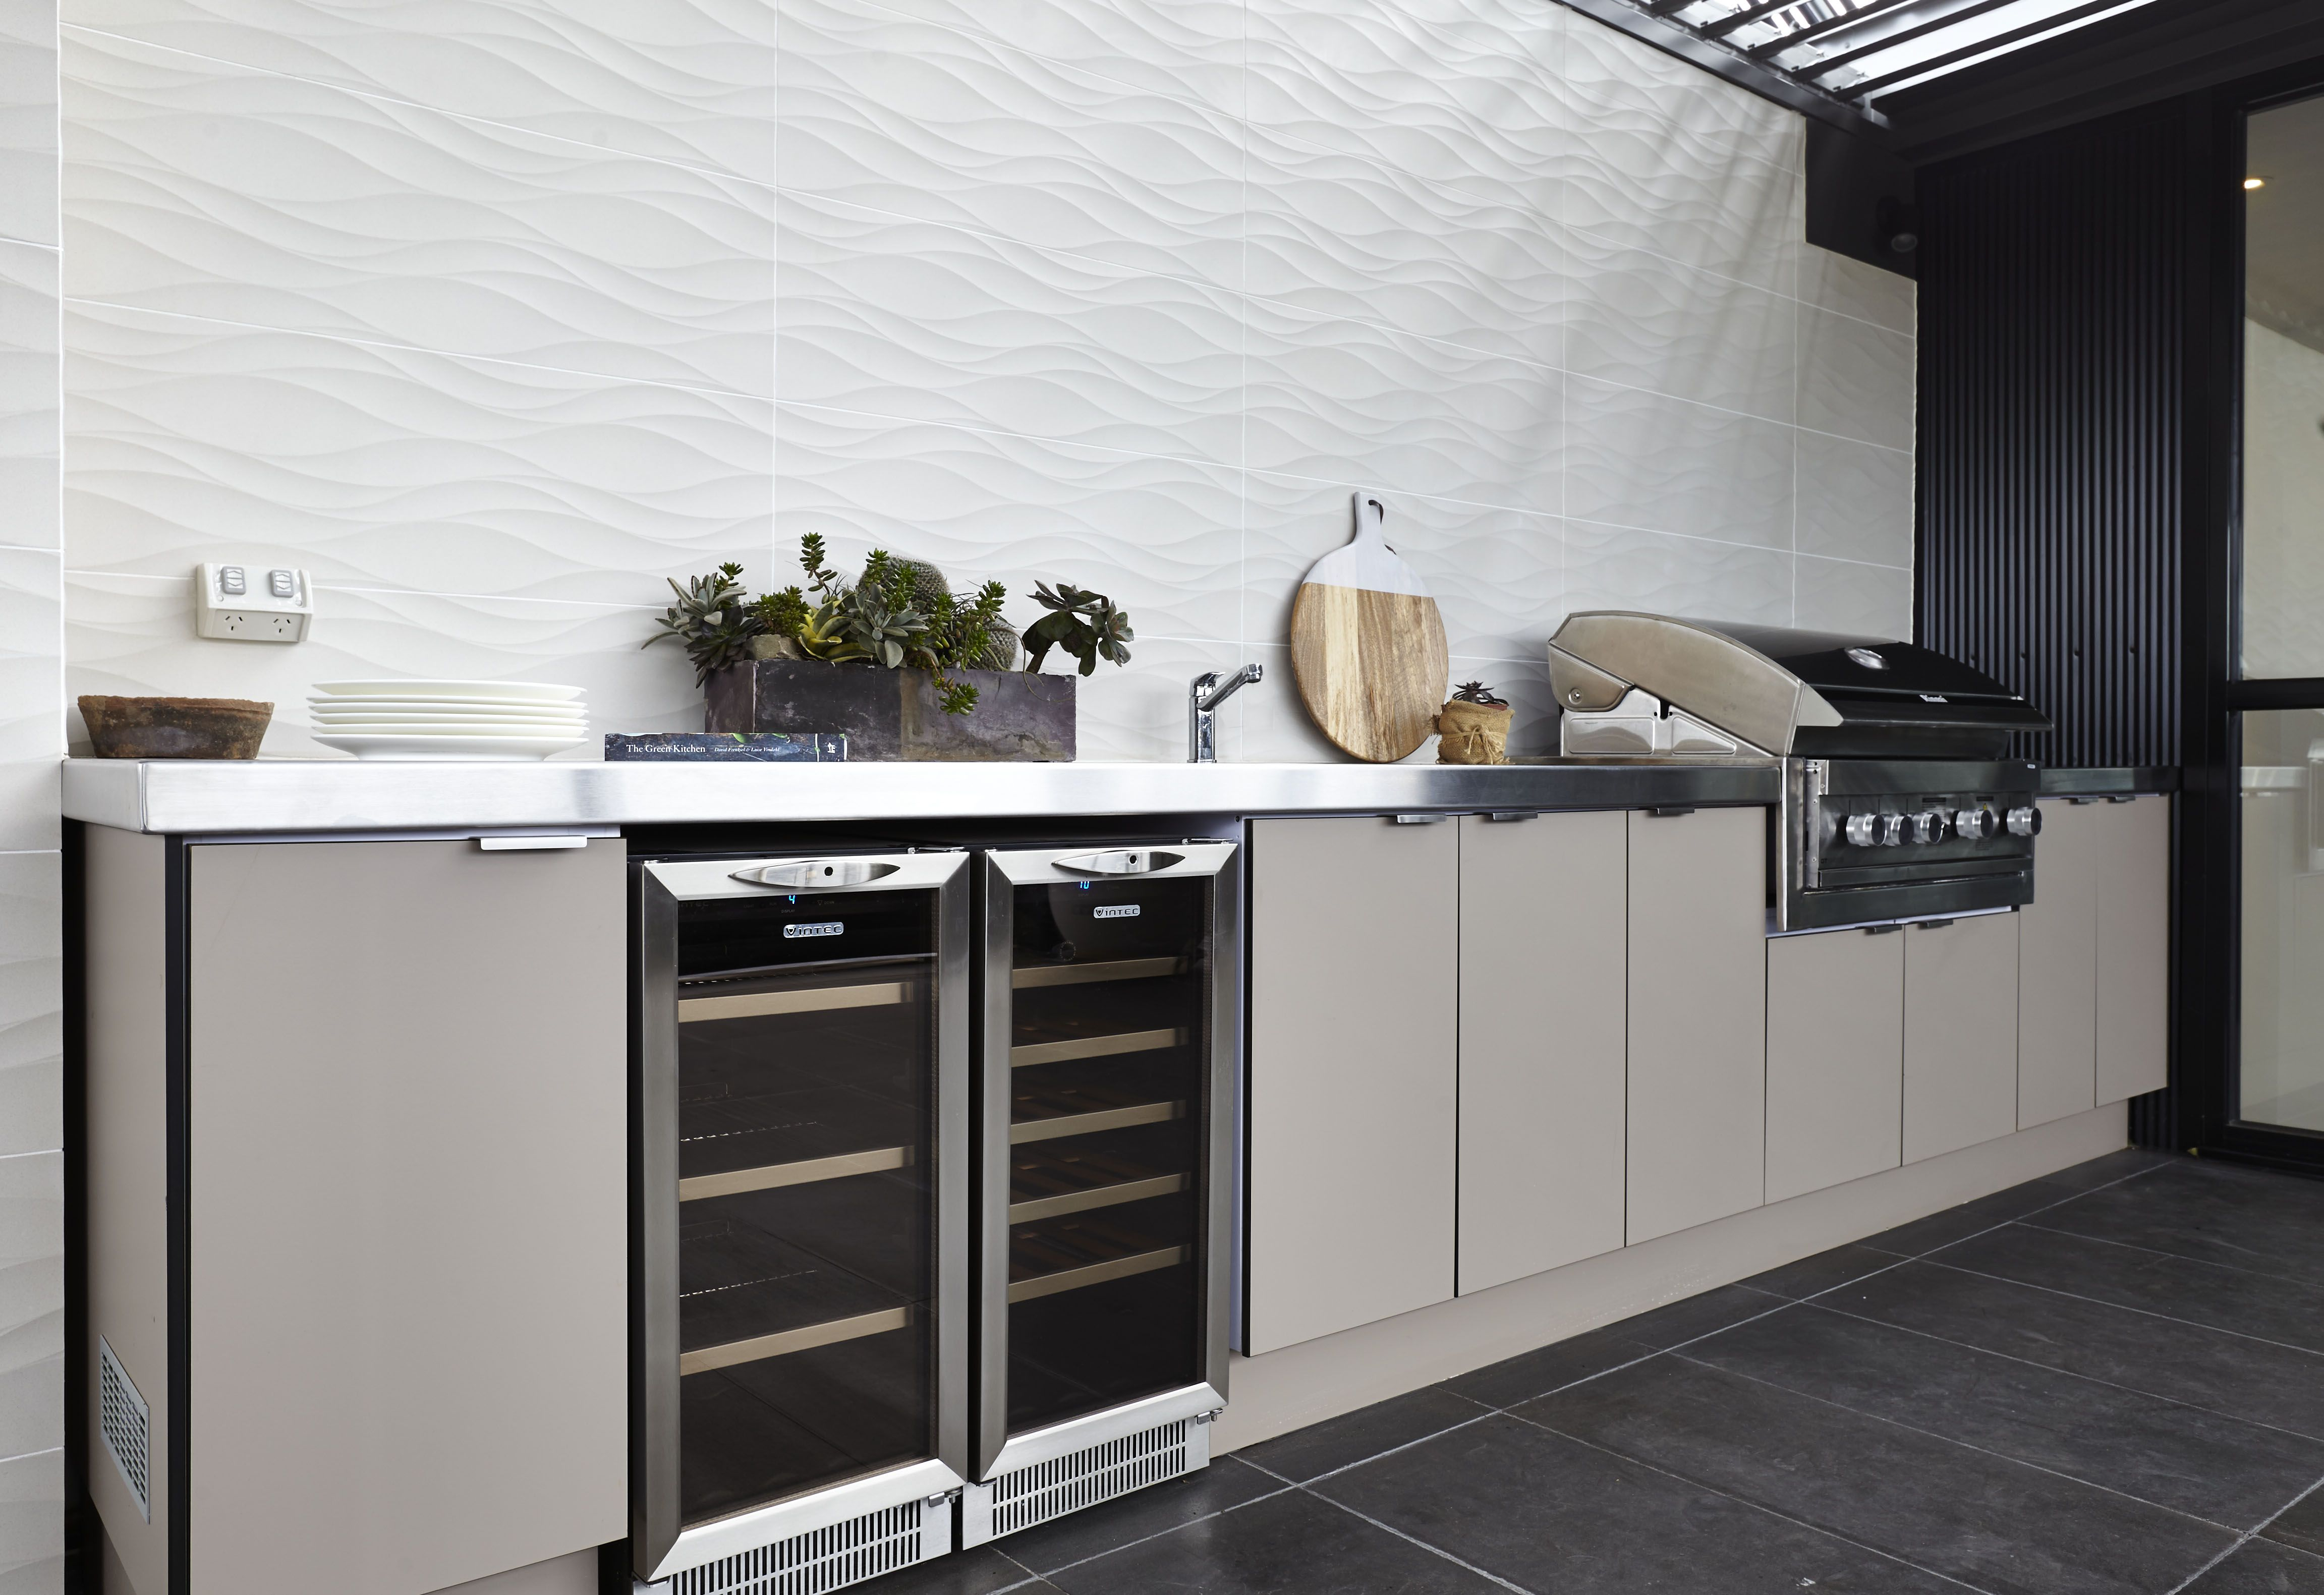 Alfresco Outdoor Kitchens Laminex Alfresco Compact Laminate In Stone Was Used For The